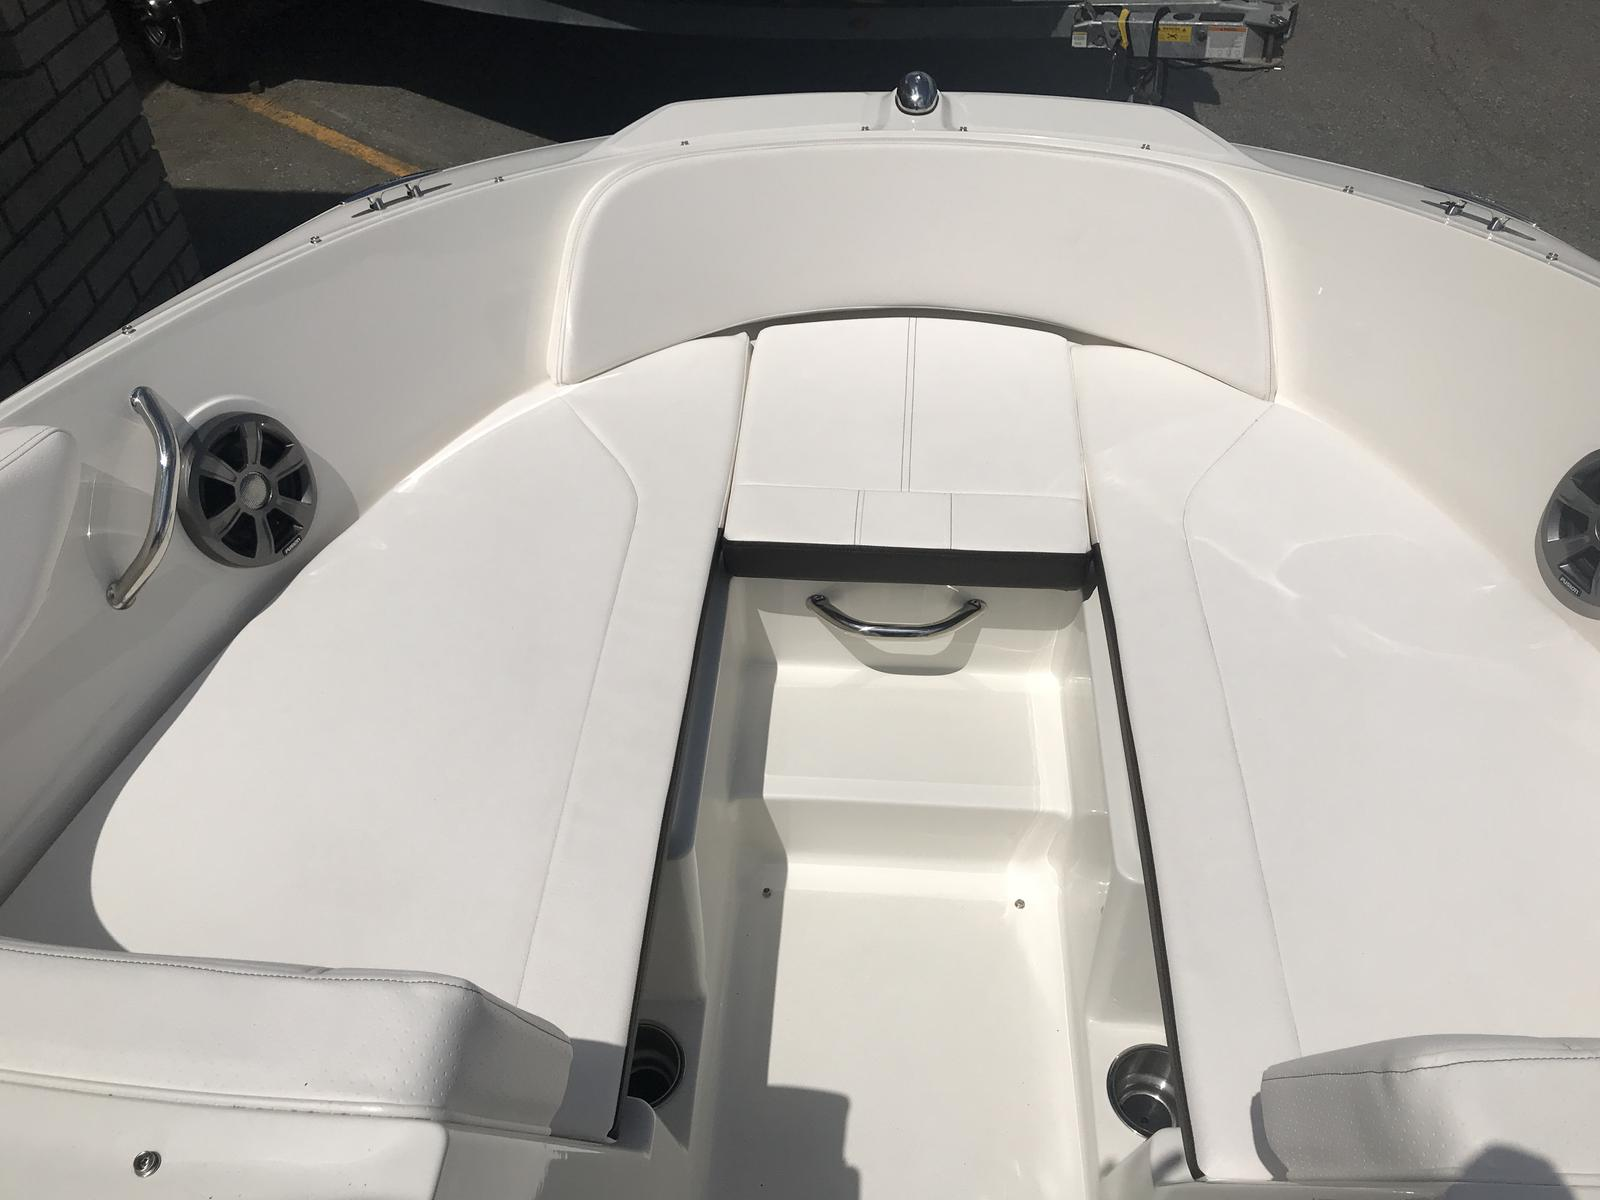 2019 Sea Ray boat for sale, model of the boat is SPX 190 & Image # 5 of 14